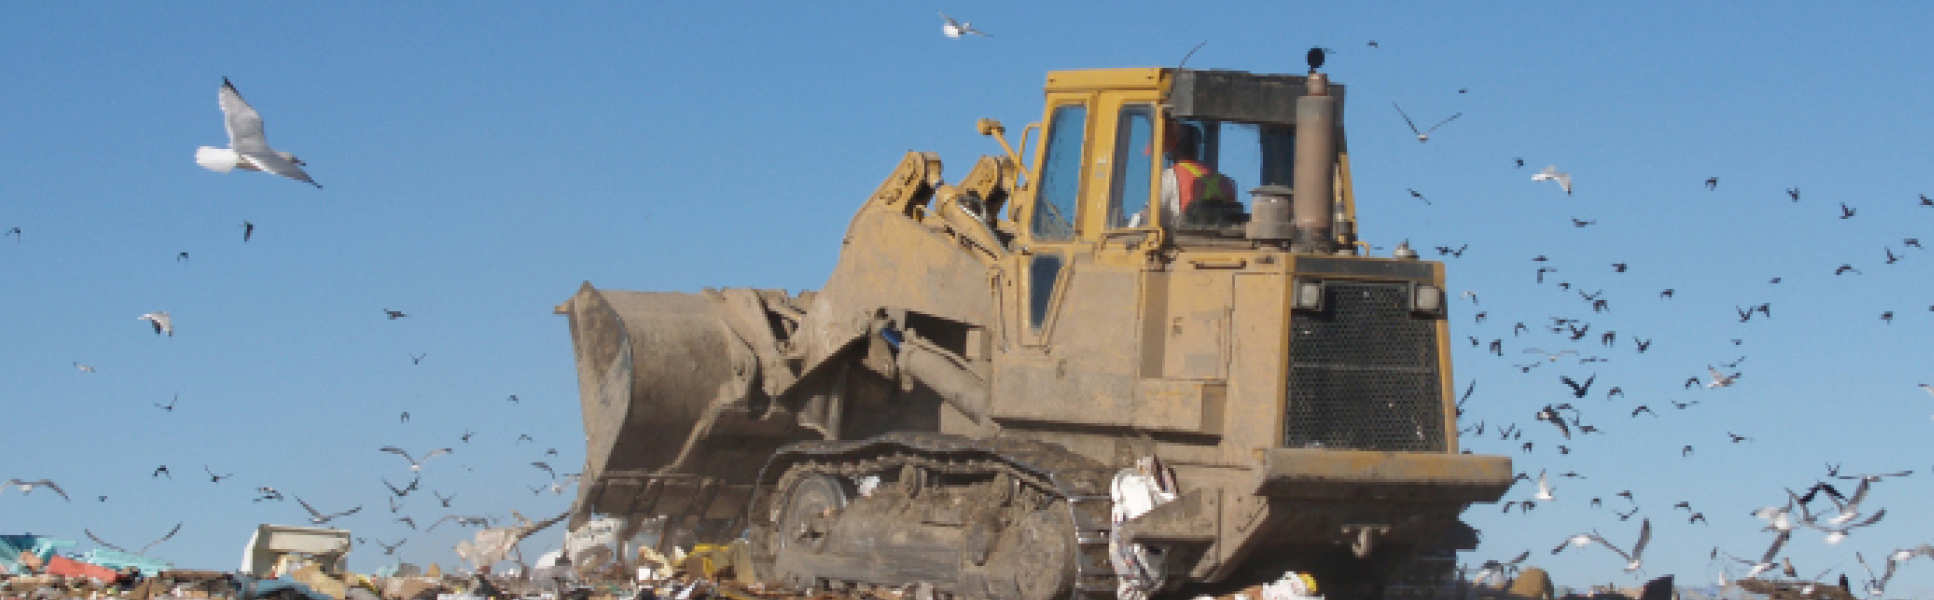 A digger on a landfill site